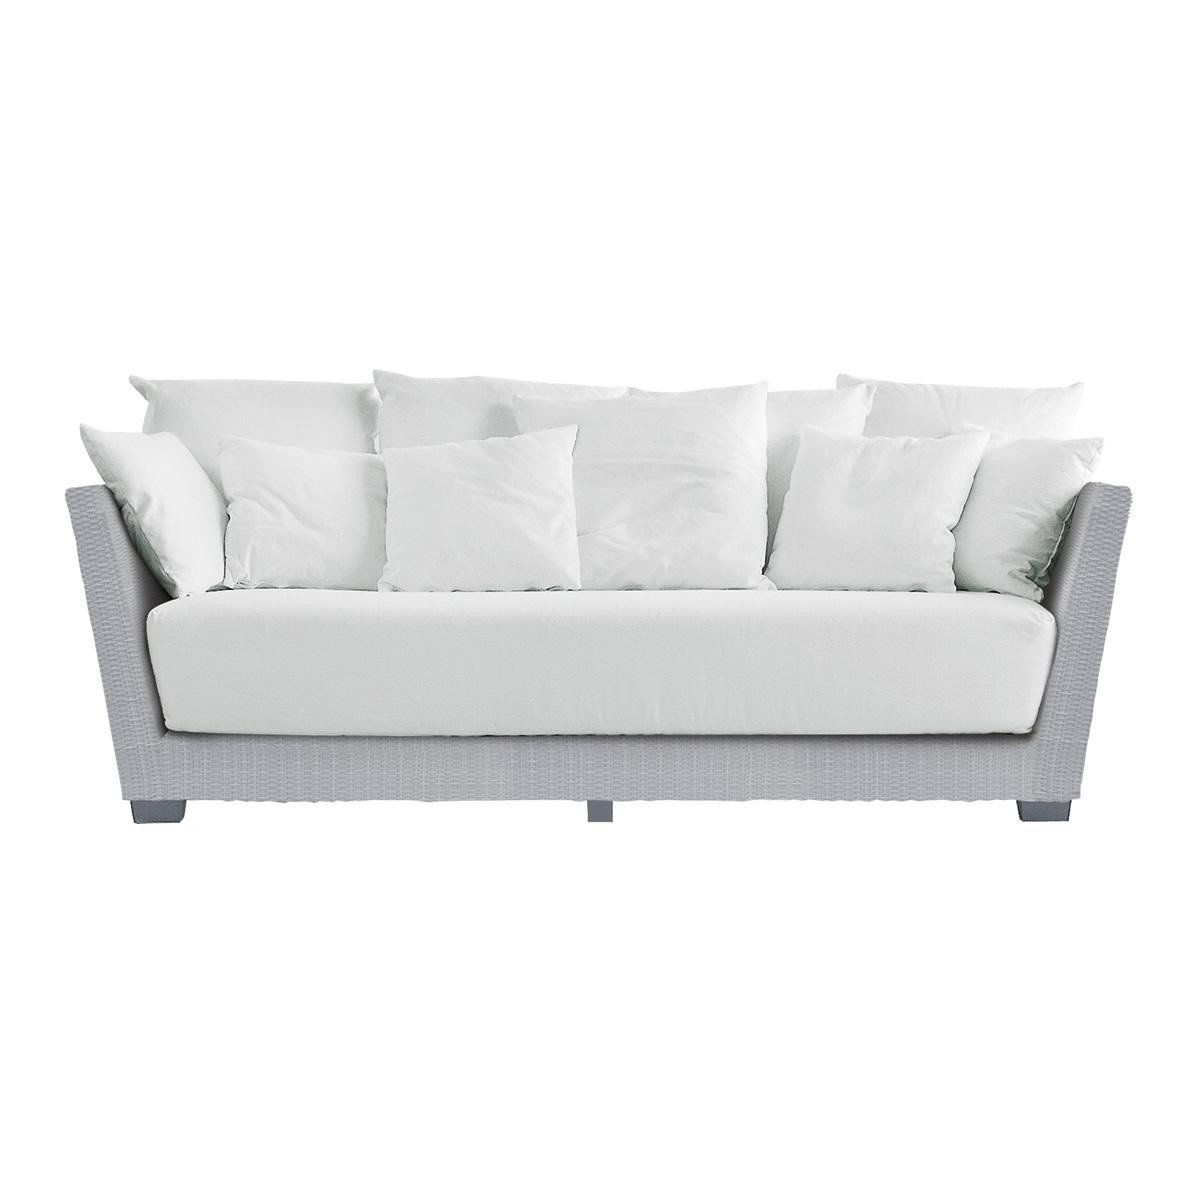 InOut 503 Poly Rattan Outdoor Sofa | Gervasoni | AmbienteDirect.com